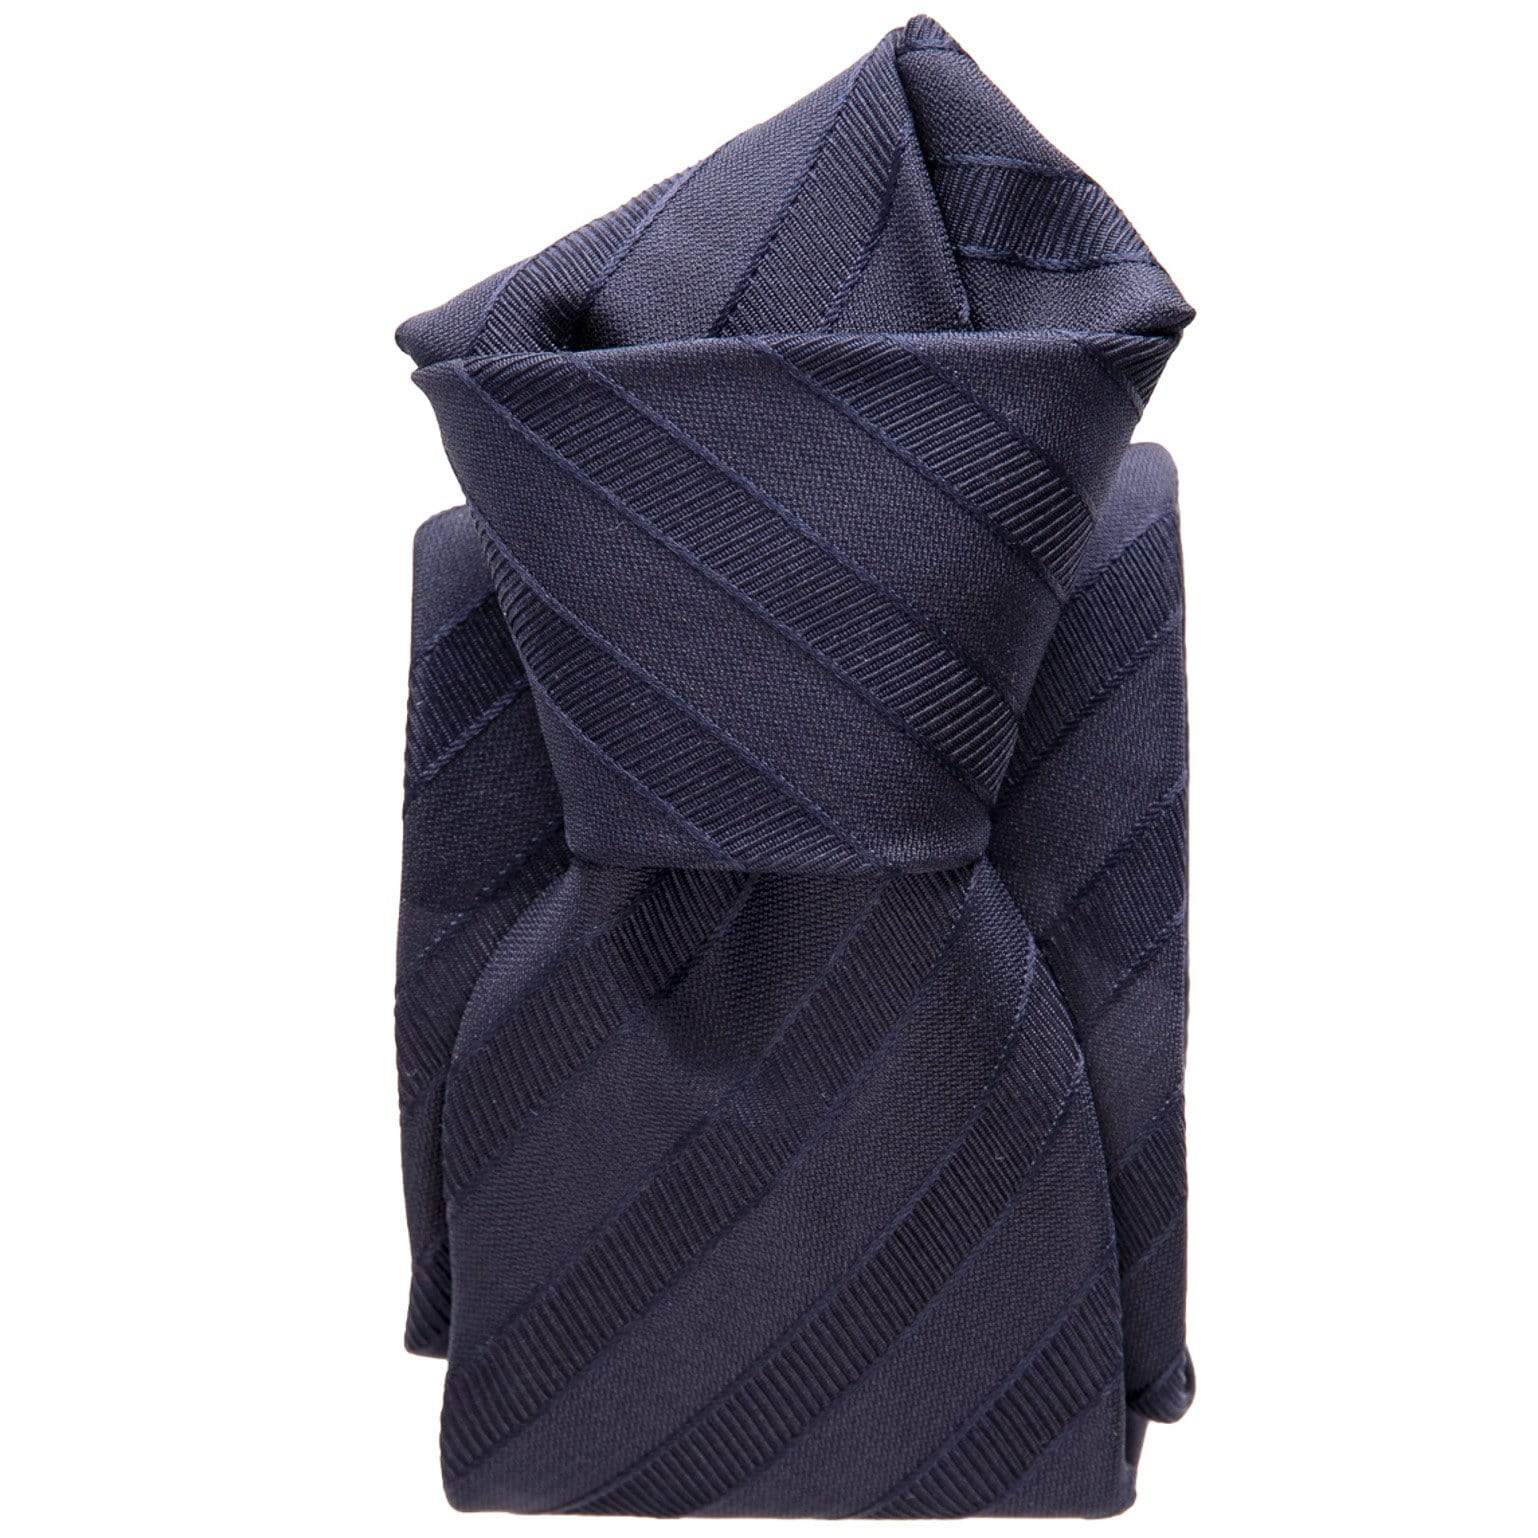 Navy Blue Striped Tie - 3 Fold - Made in Como Italy